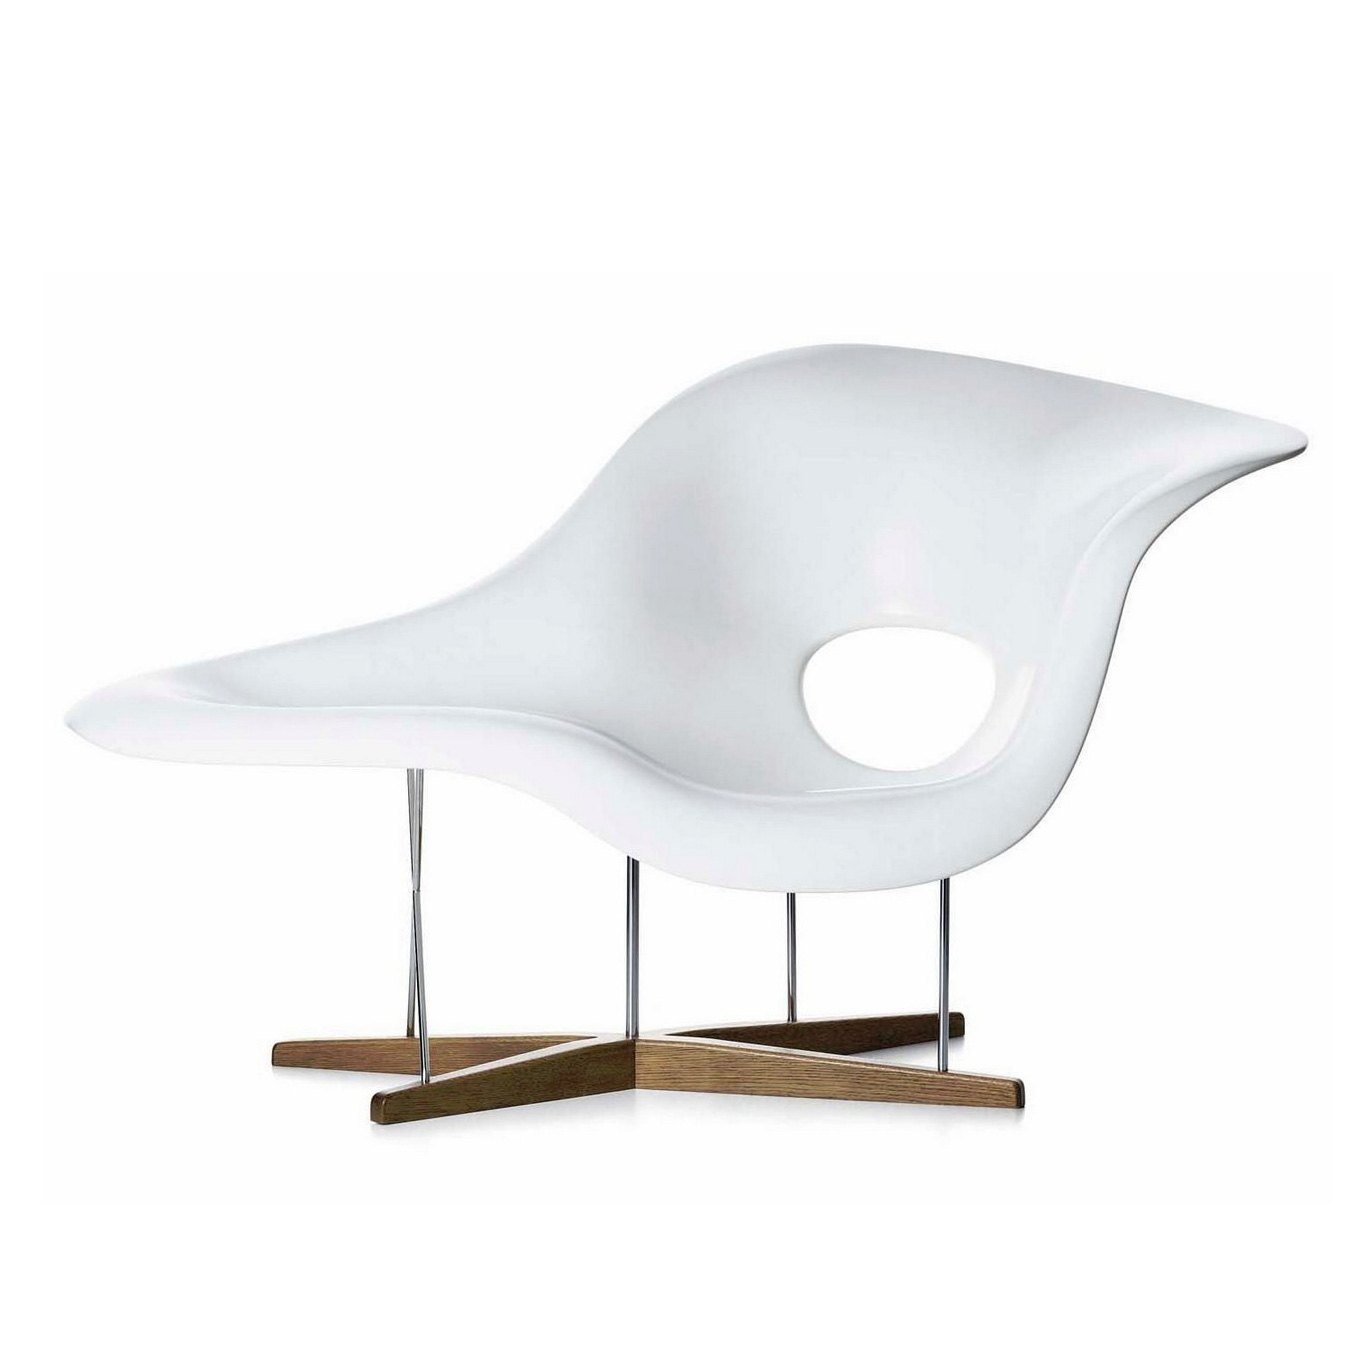 Charles eames chaise longue bauhaus chaiselongue for Chaise longue textilene